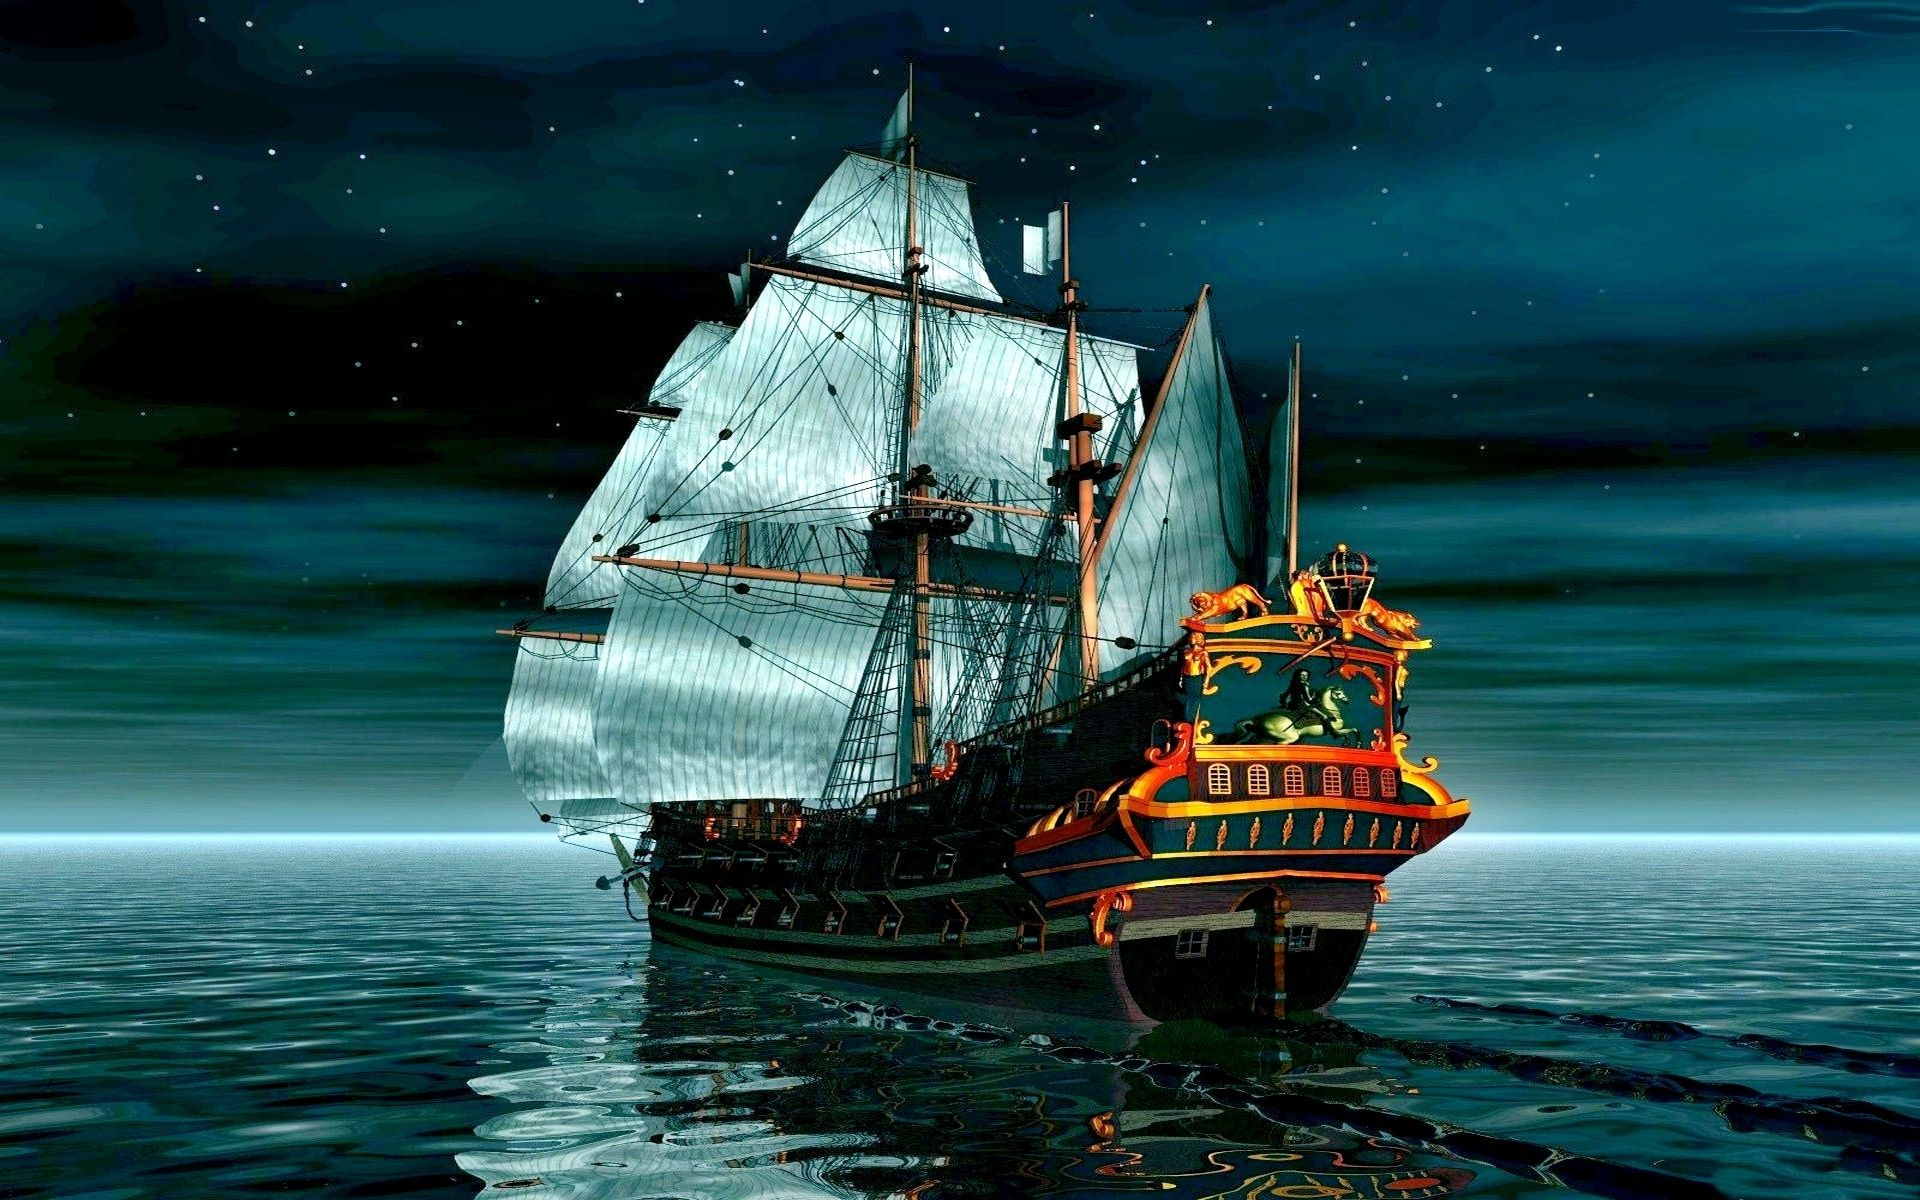 Wallpaper Collection 37 Best Free Hd 3d Hd Wallpapers Background To Download Pc Mobile In 2020 Sailing Sailing Ships Old Sailing Ships